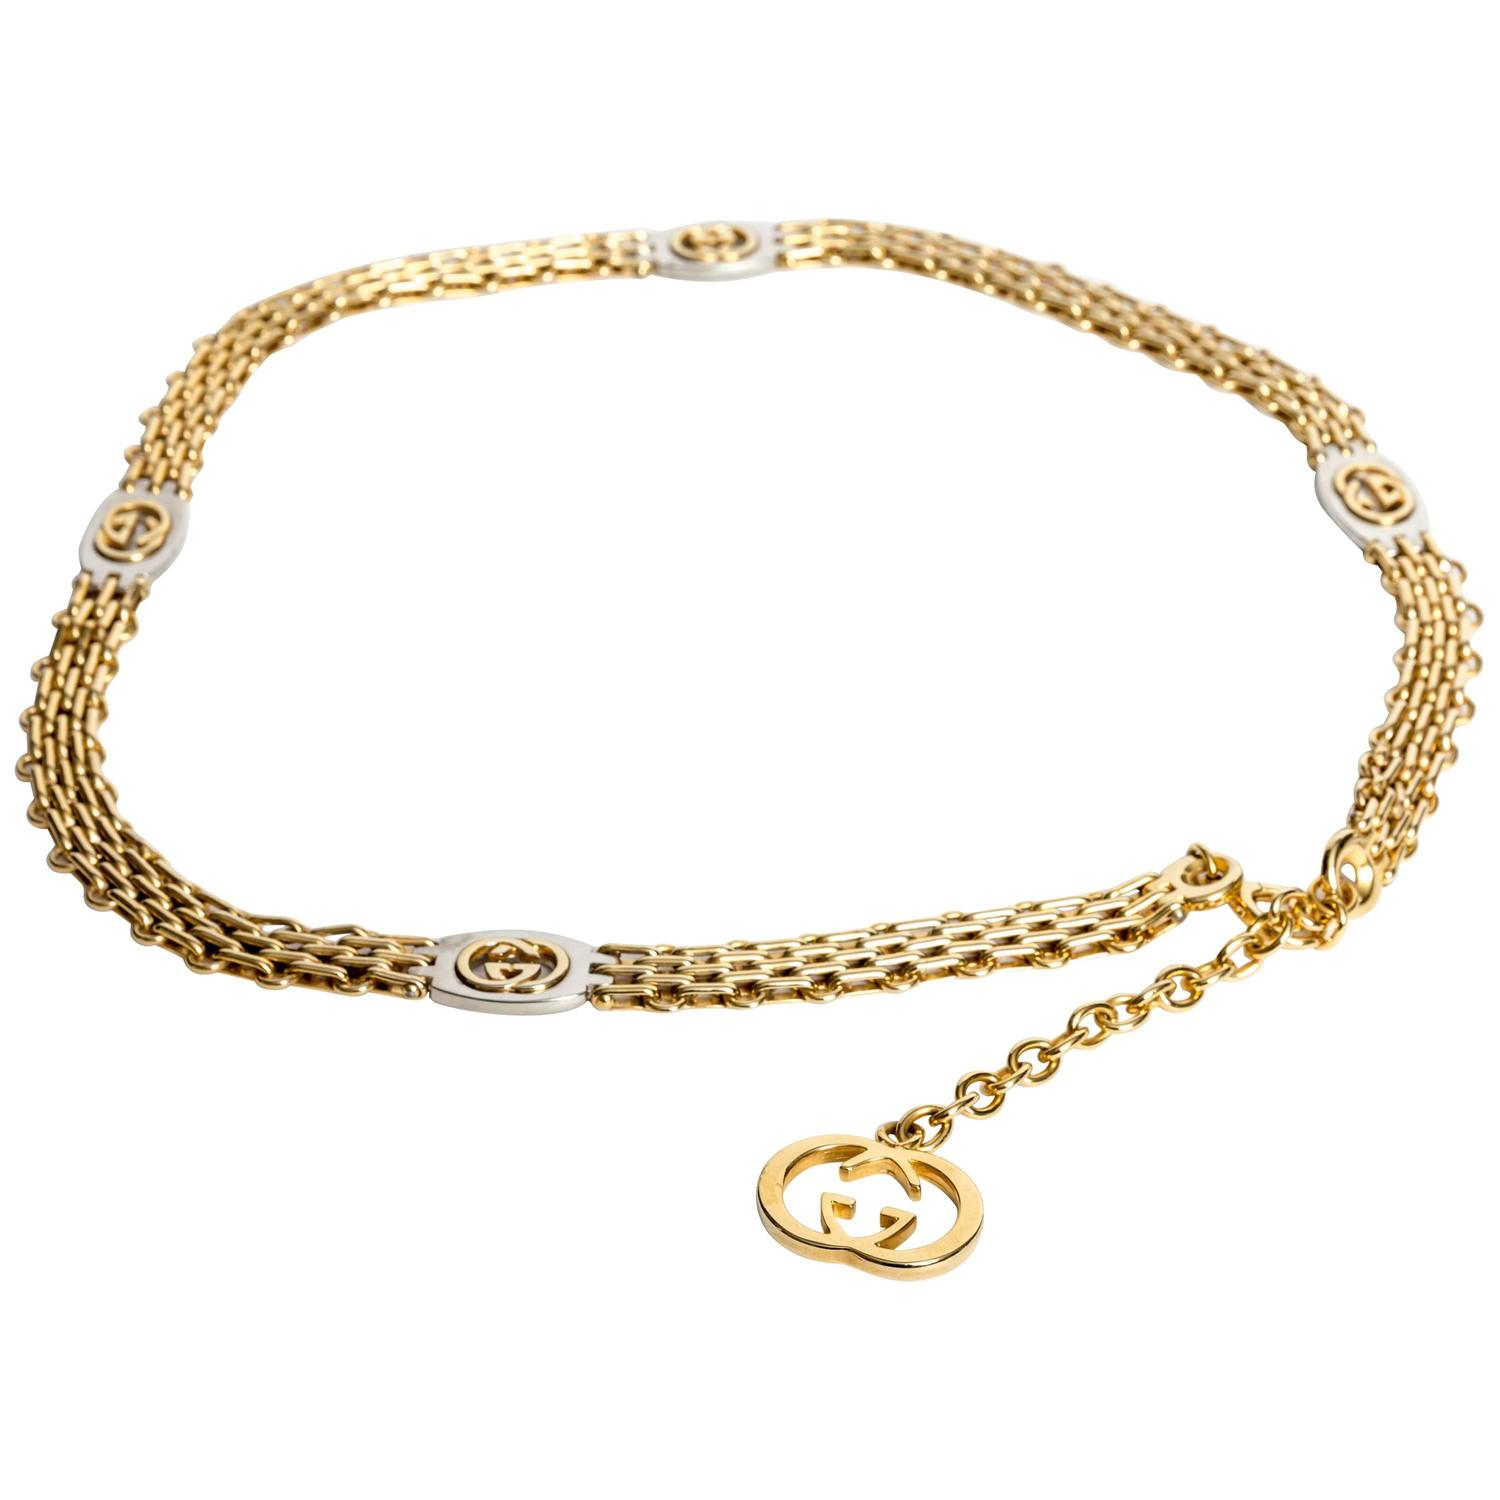 Gucci signed gold belt with gucci logo pendant at 1stdibs aloadofball Gallery